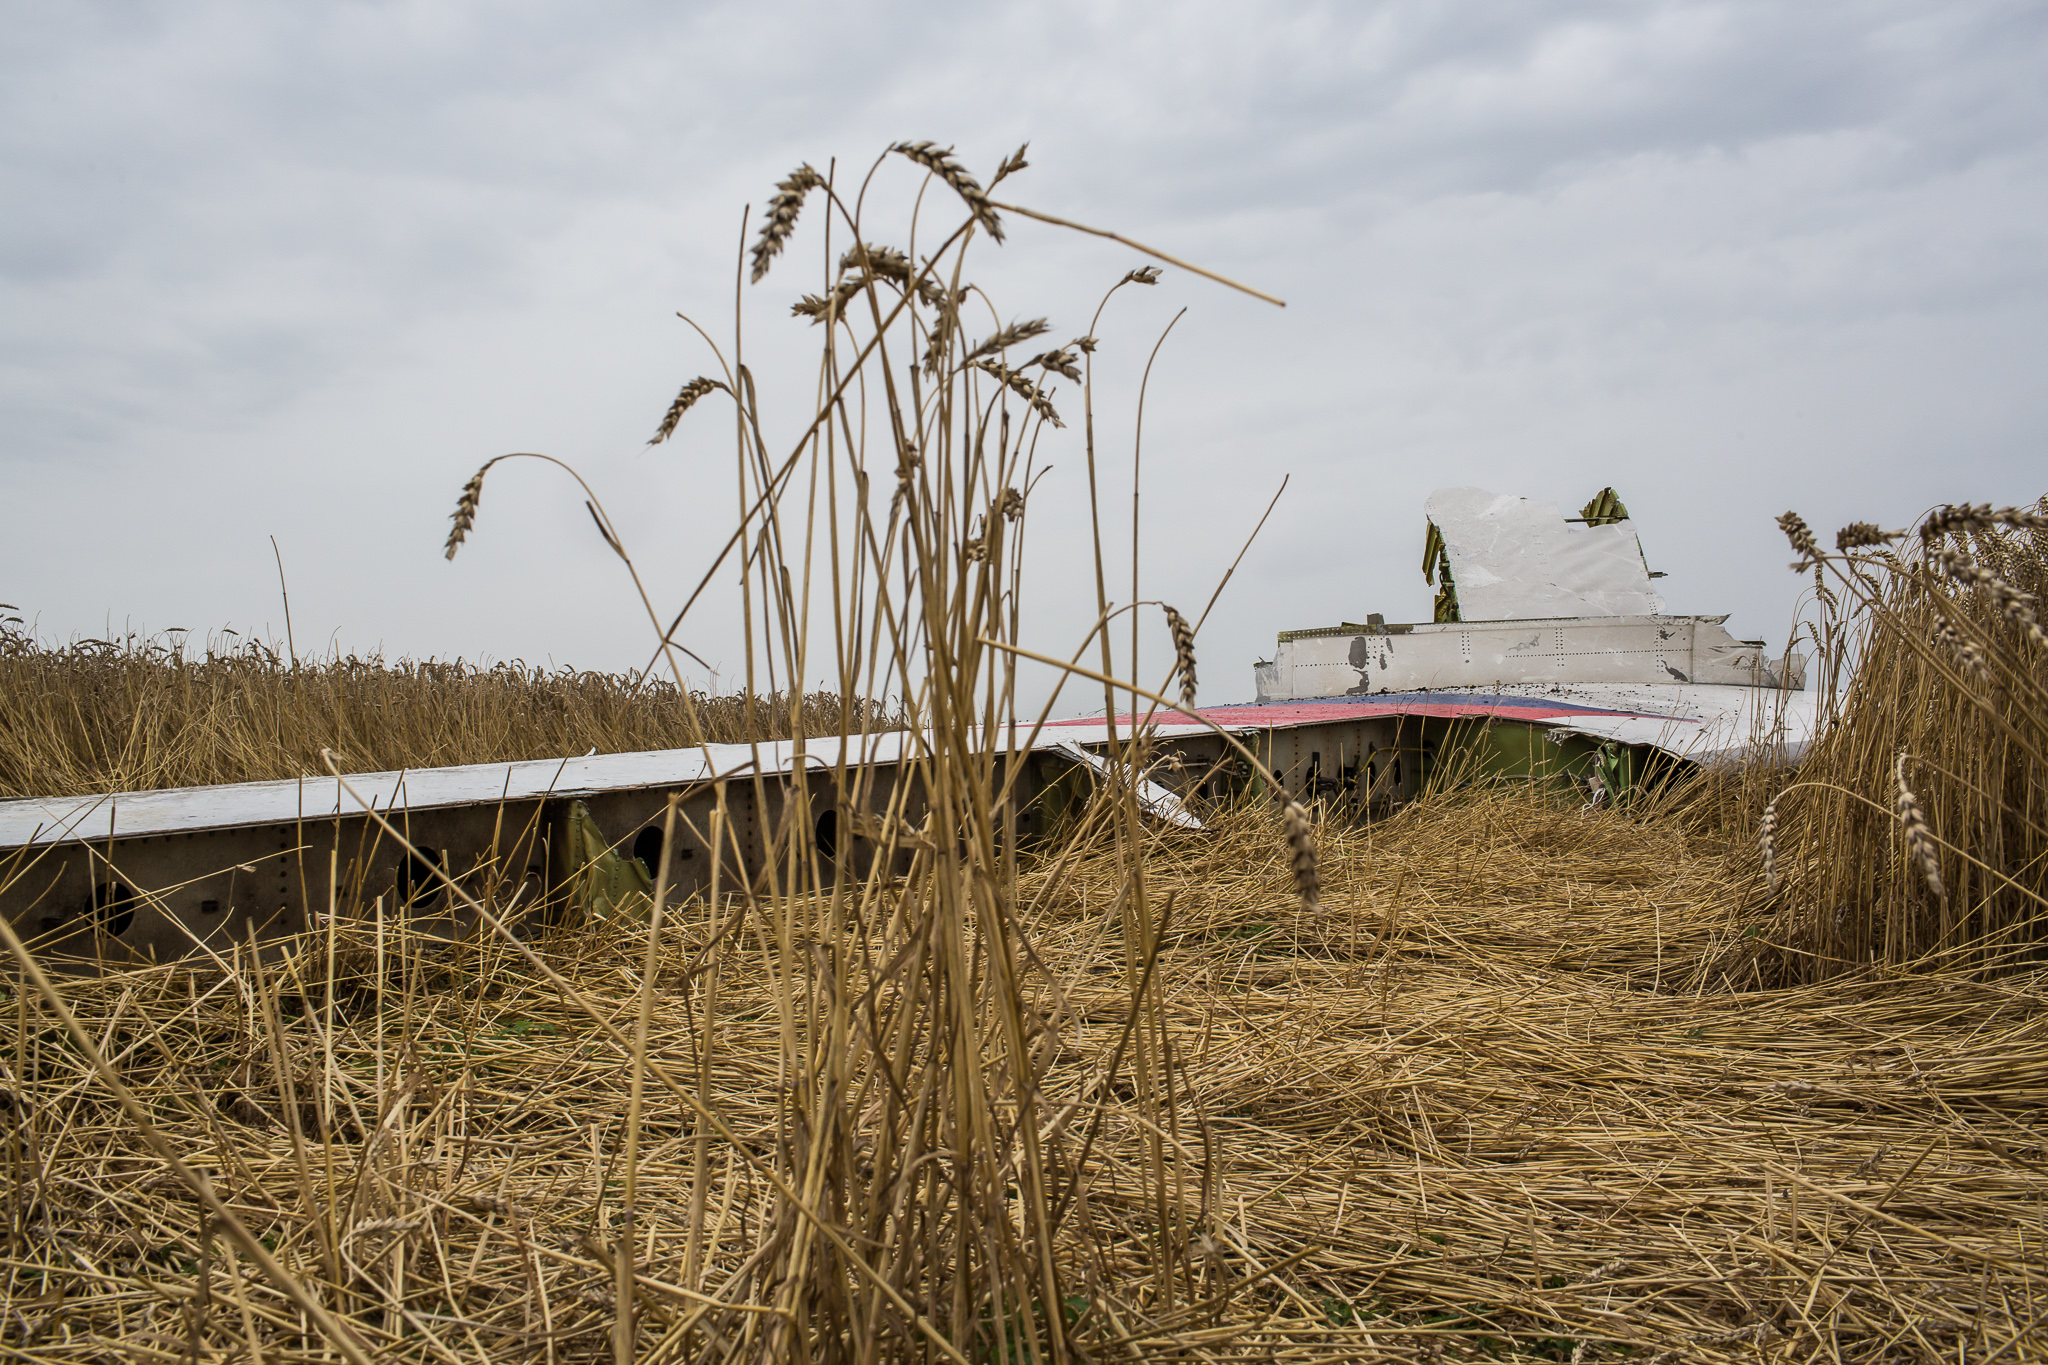 The tail from an Air Malaysia plane crash lies in a wheat field on July 18, 2014 in Grabovo, Ukraine. Malaysia Airlines flight MH17 travelling from Amsterdam to Kuala Lumpur has crashed on the Ukraine/Russia border near the town of Shaktersk. The Boeing 777 was carrying 298 people.